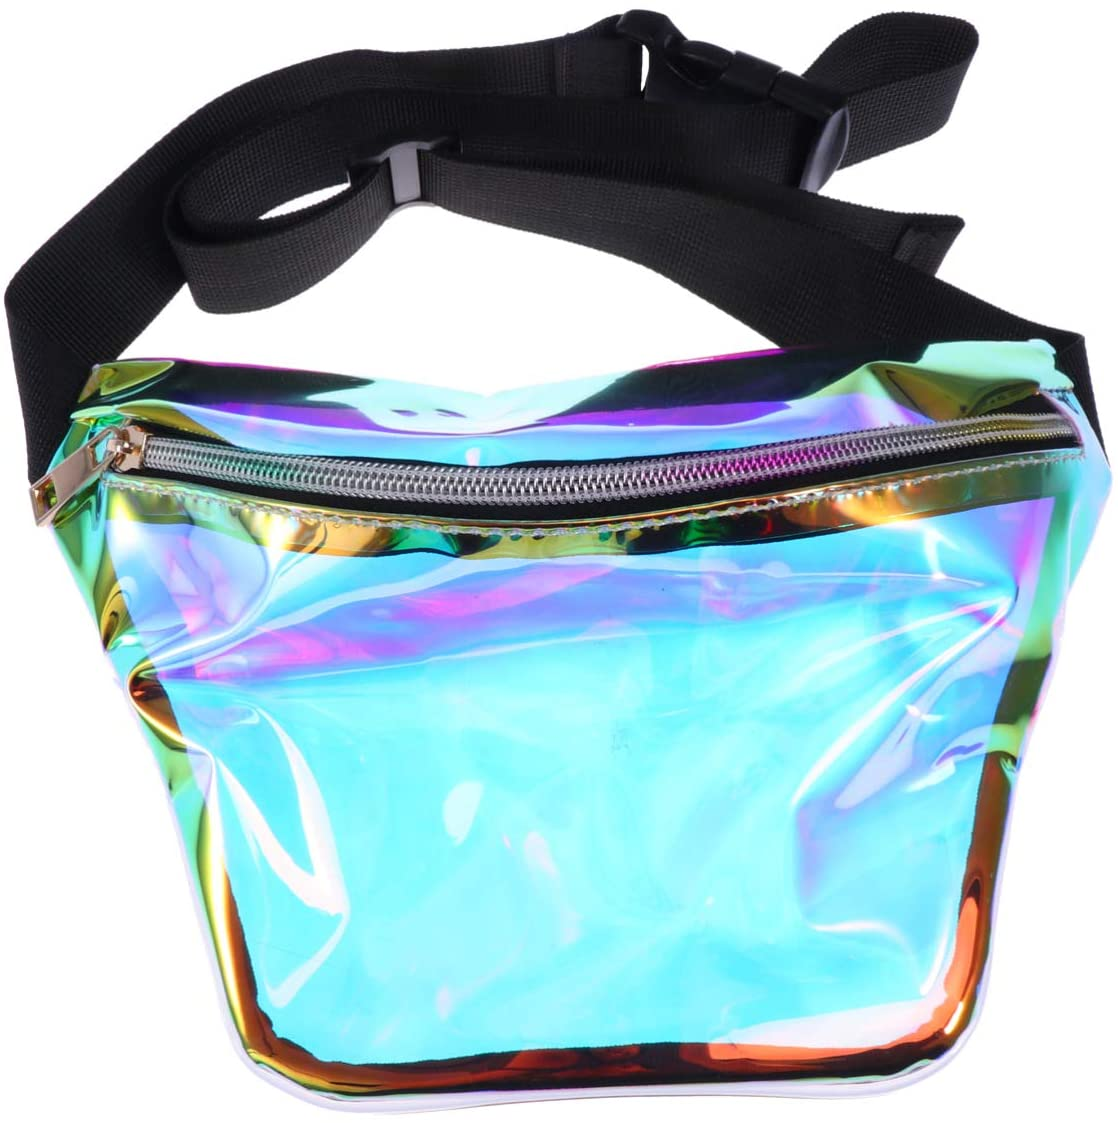 FENICAL Fanny Pack Holographic Waist Bag Clear Chest Bag Waterproof Sling Travel Bag for Women Girls